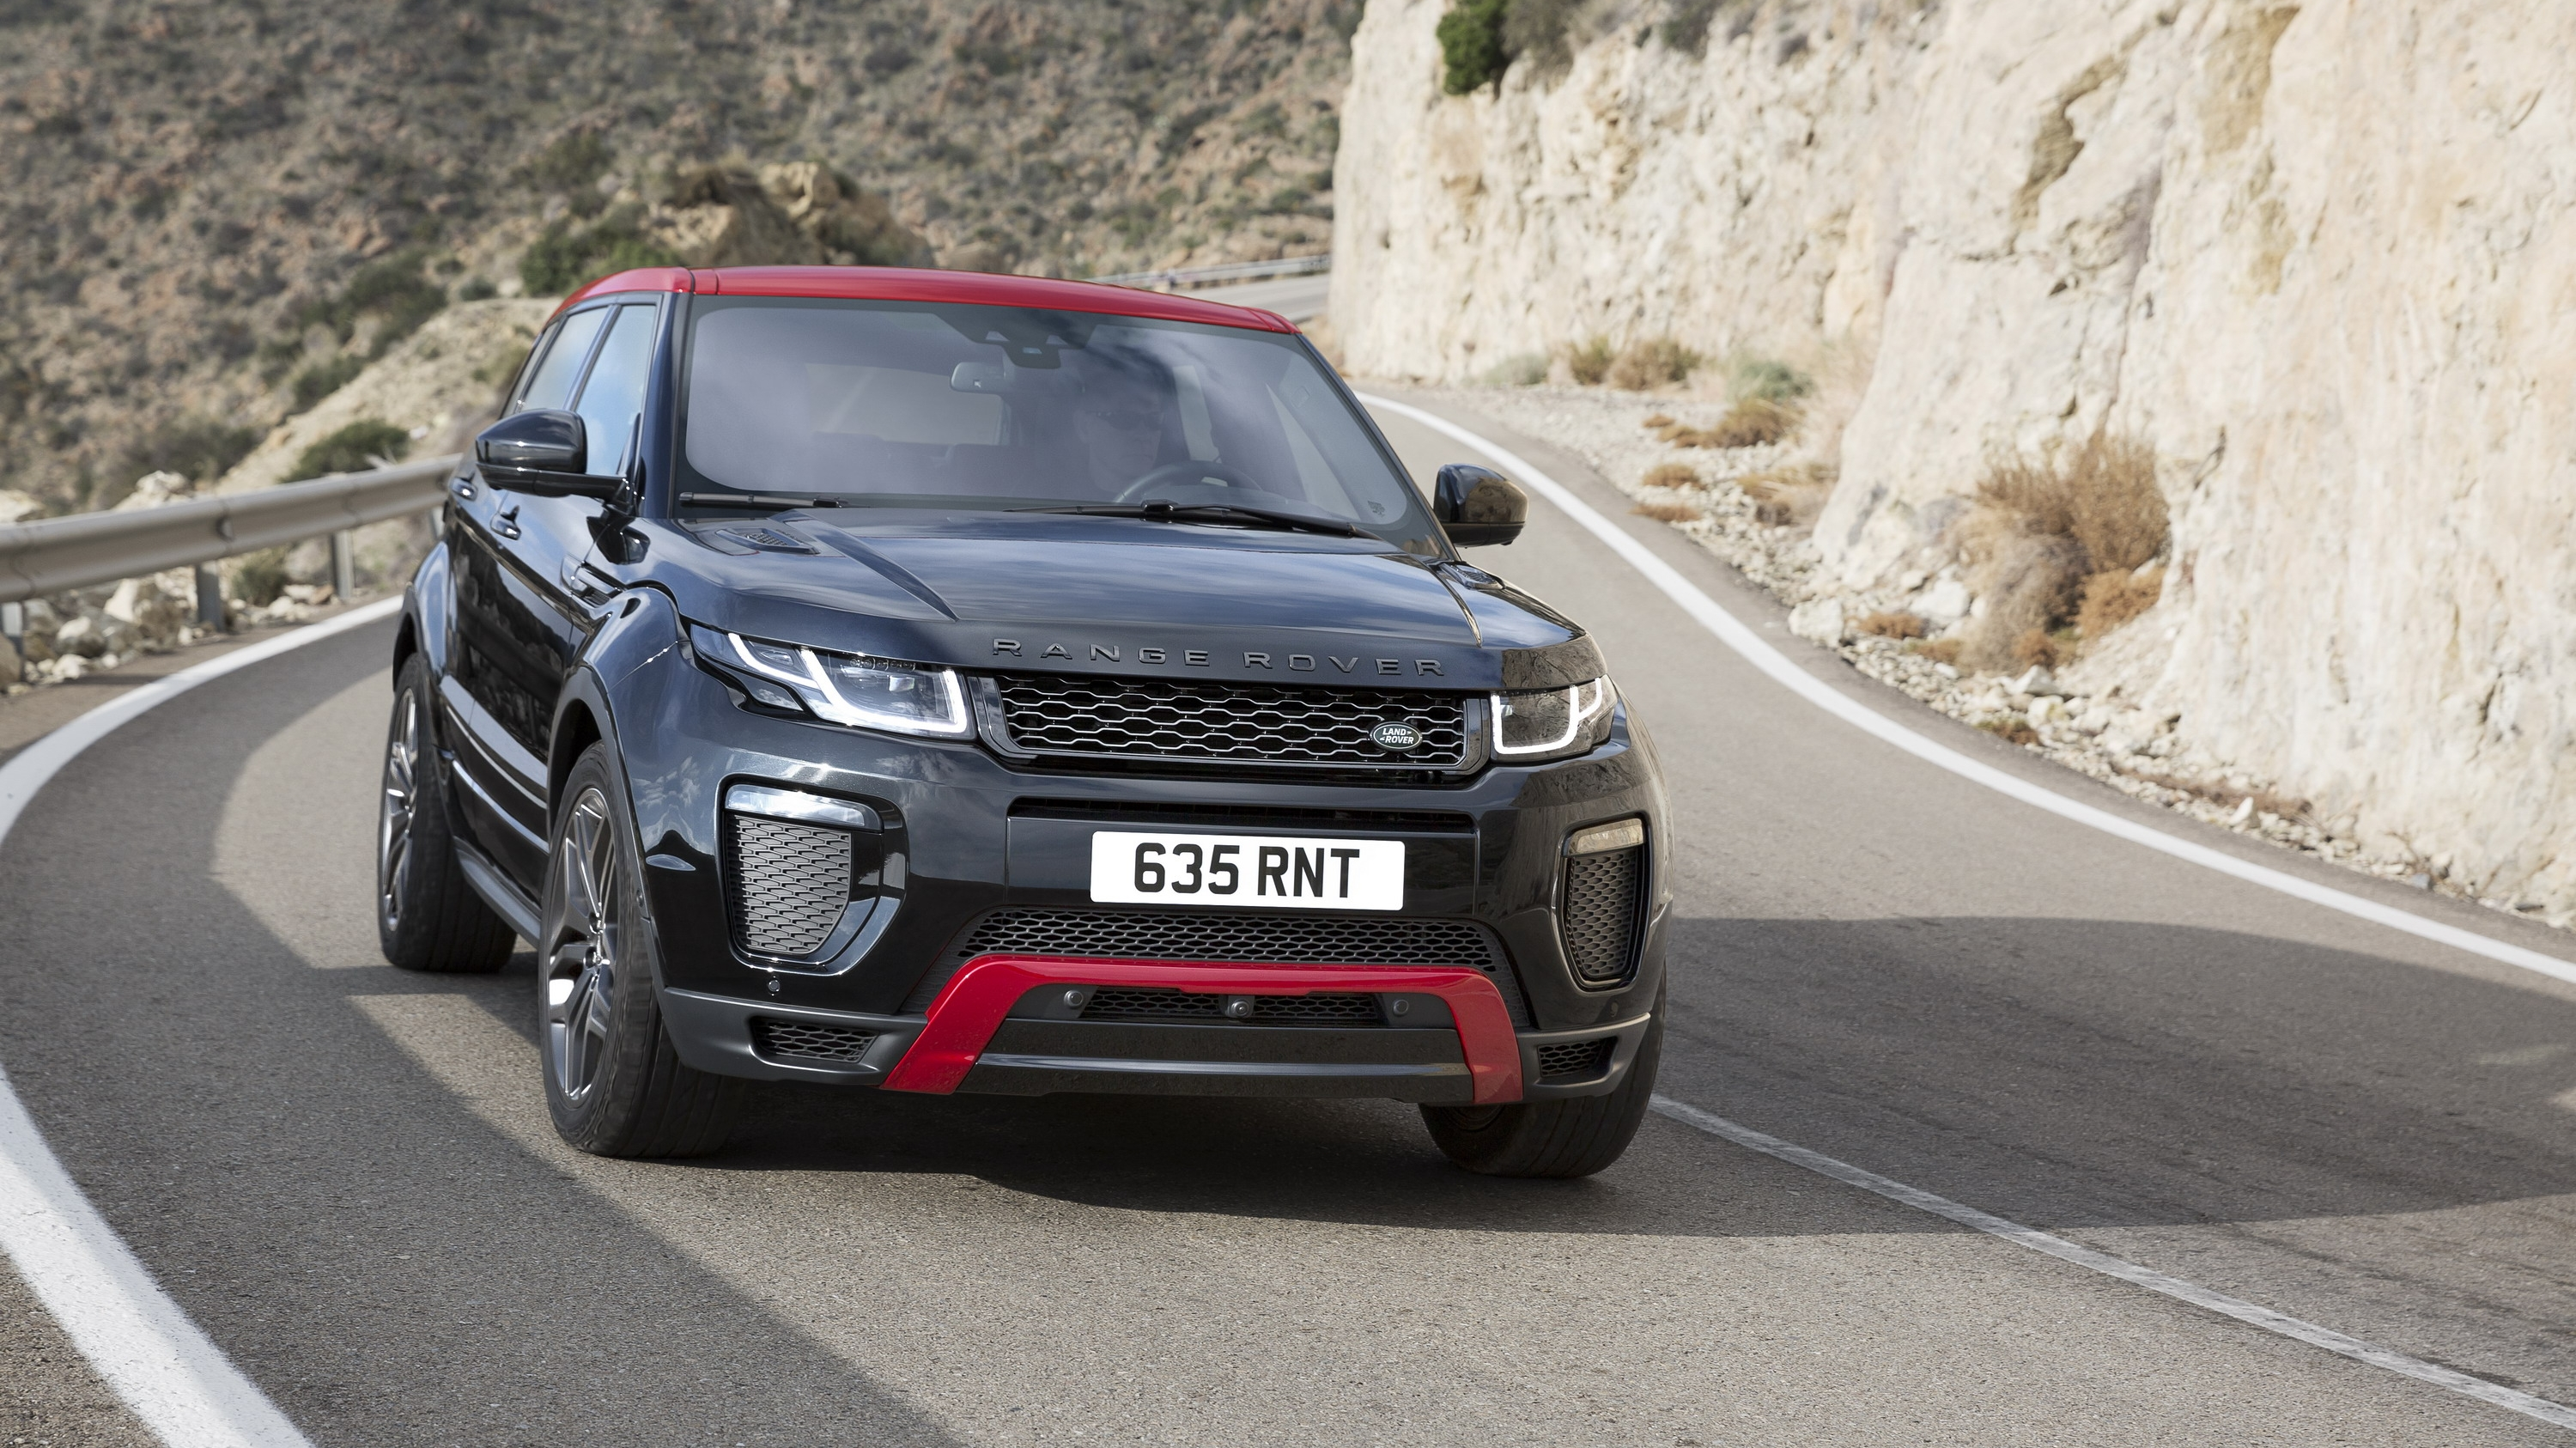 2017 Land Rover Range Rover Evoque Ember Limited Edition Review